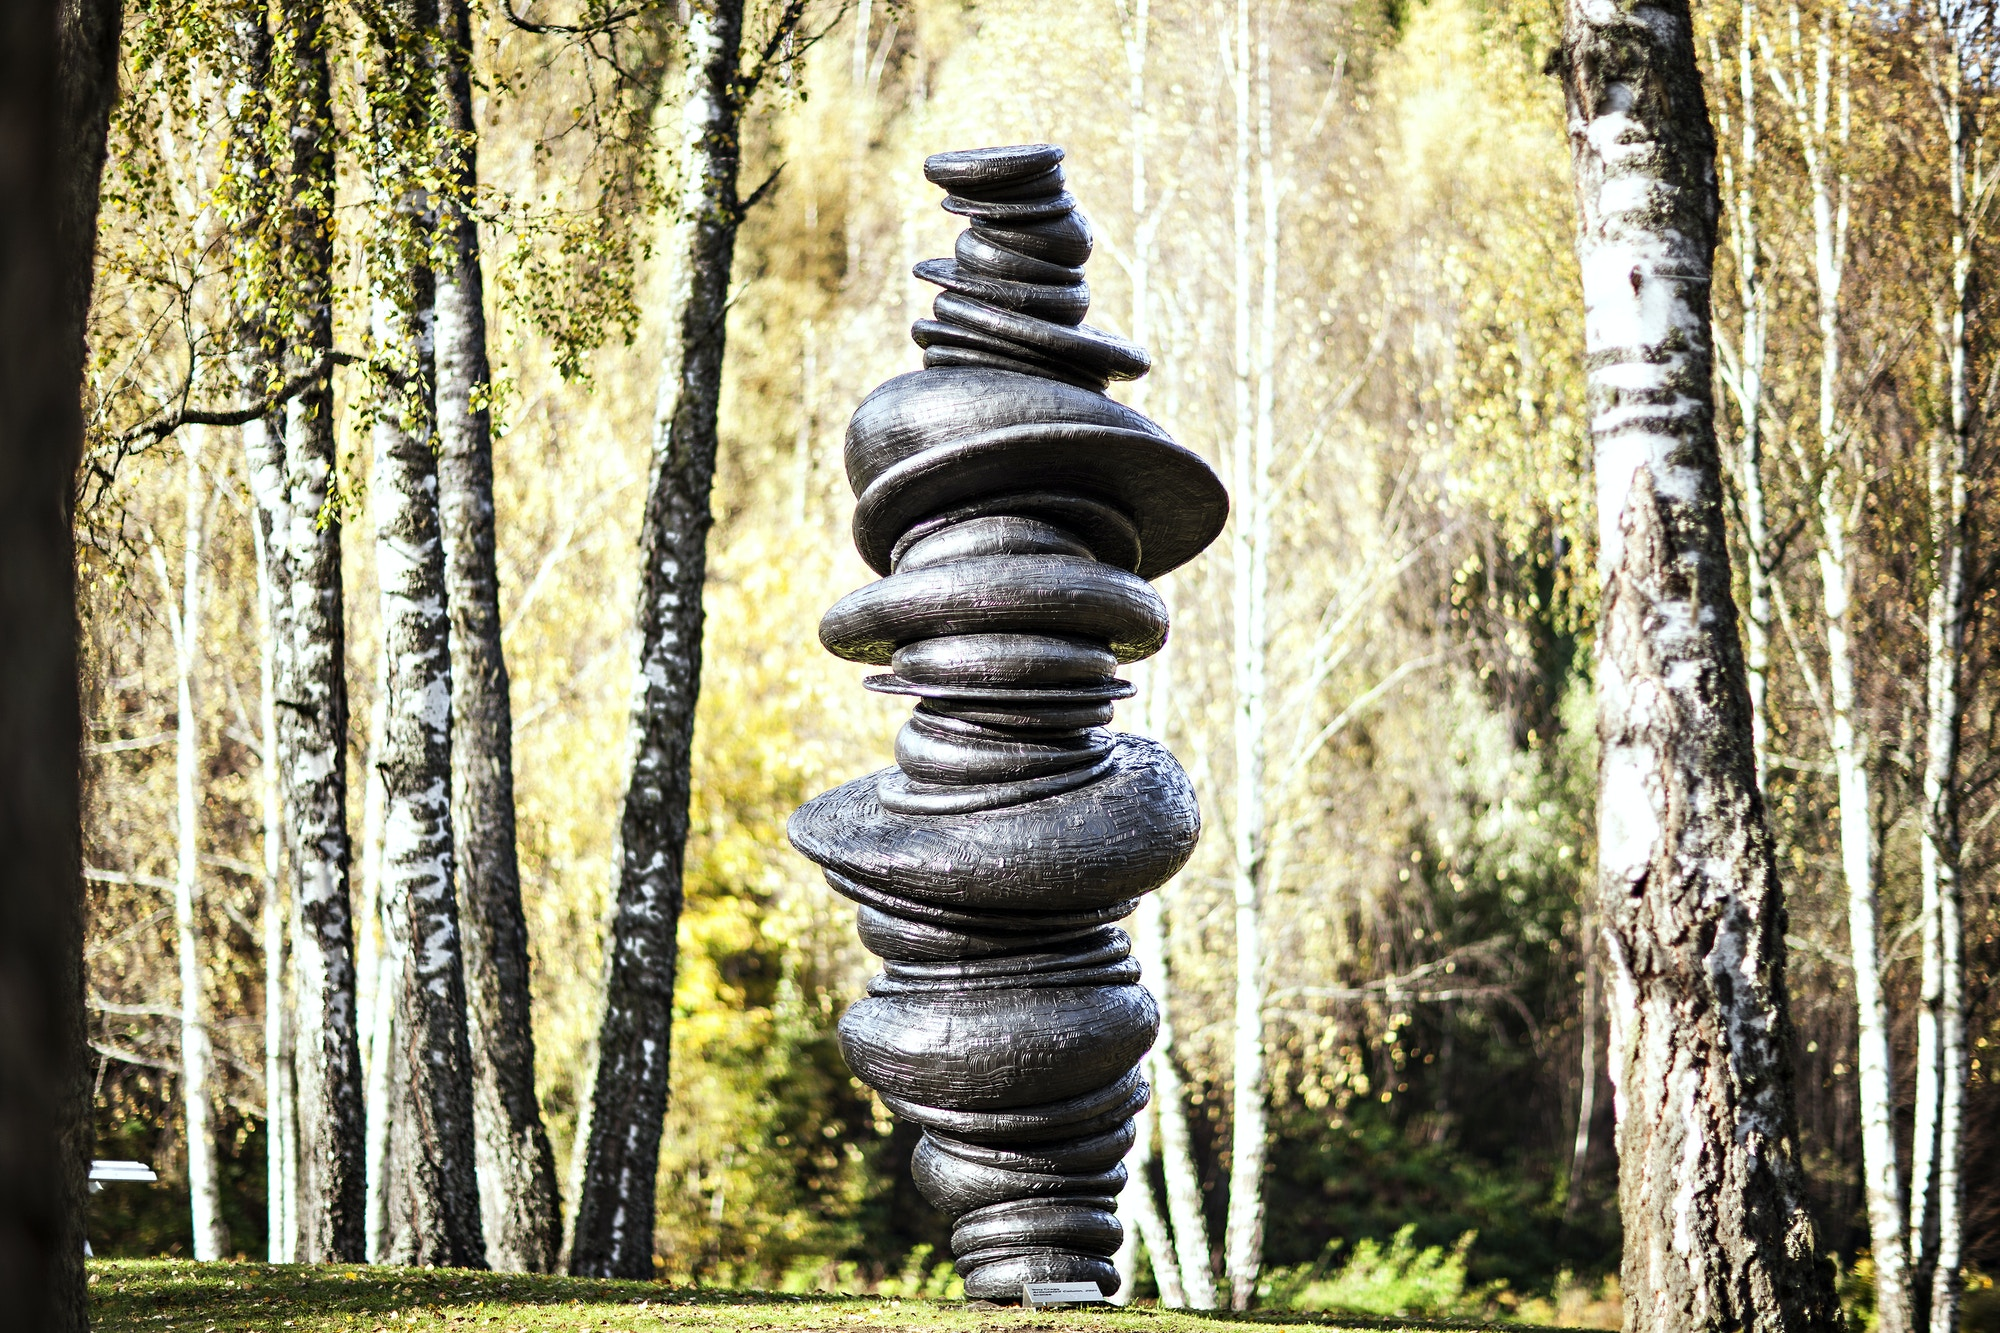 Tall black sculpture, made up of round stones on top of each other.